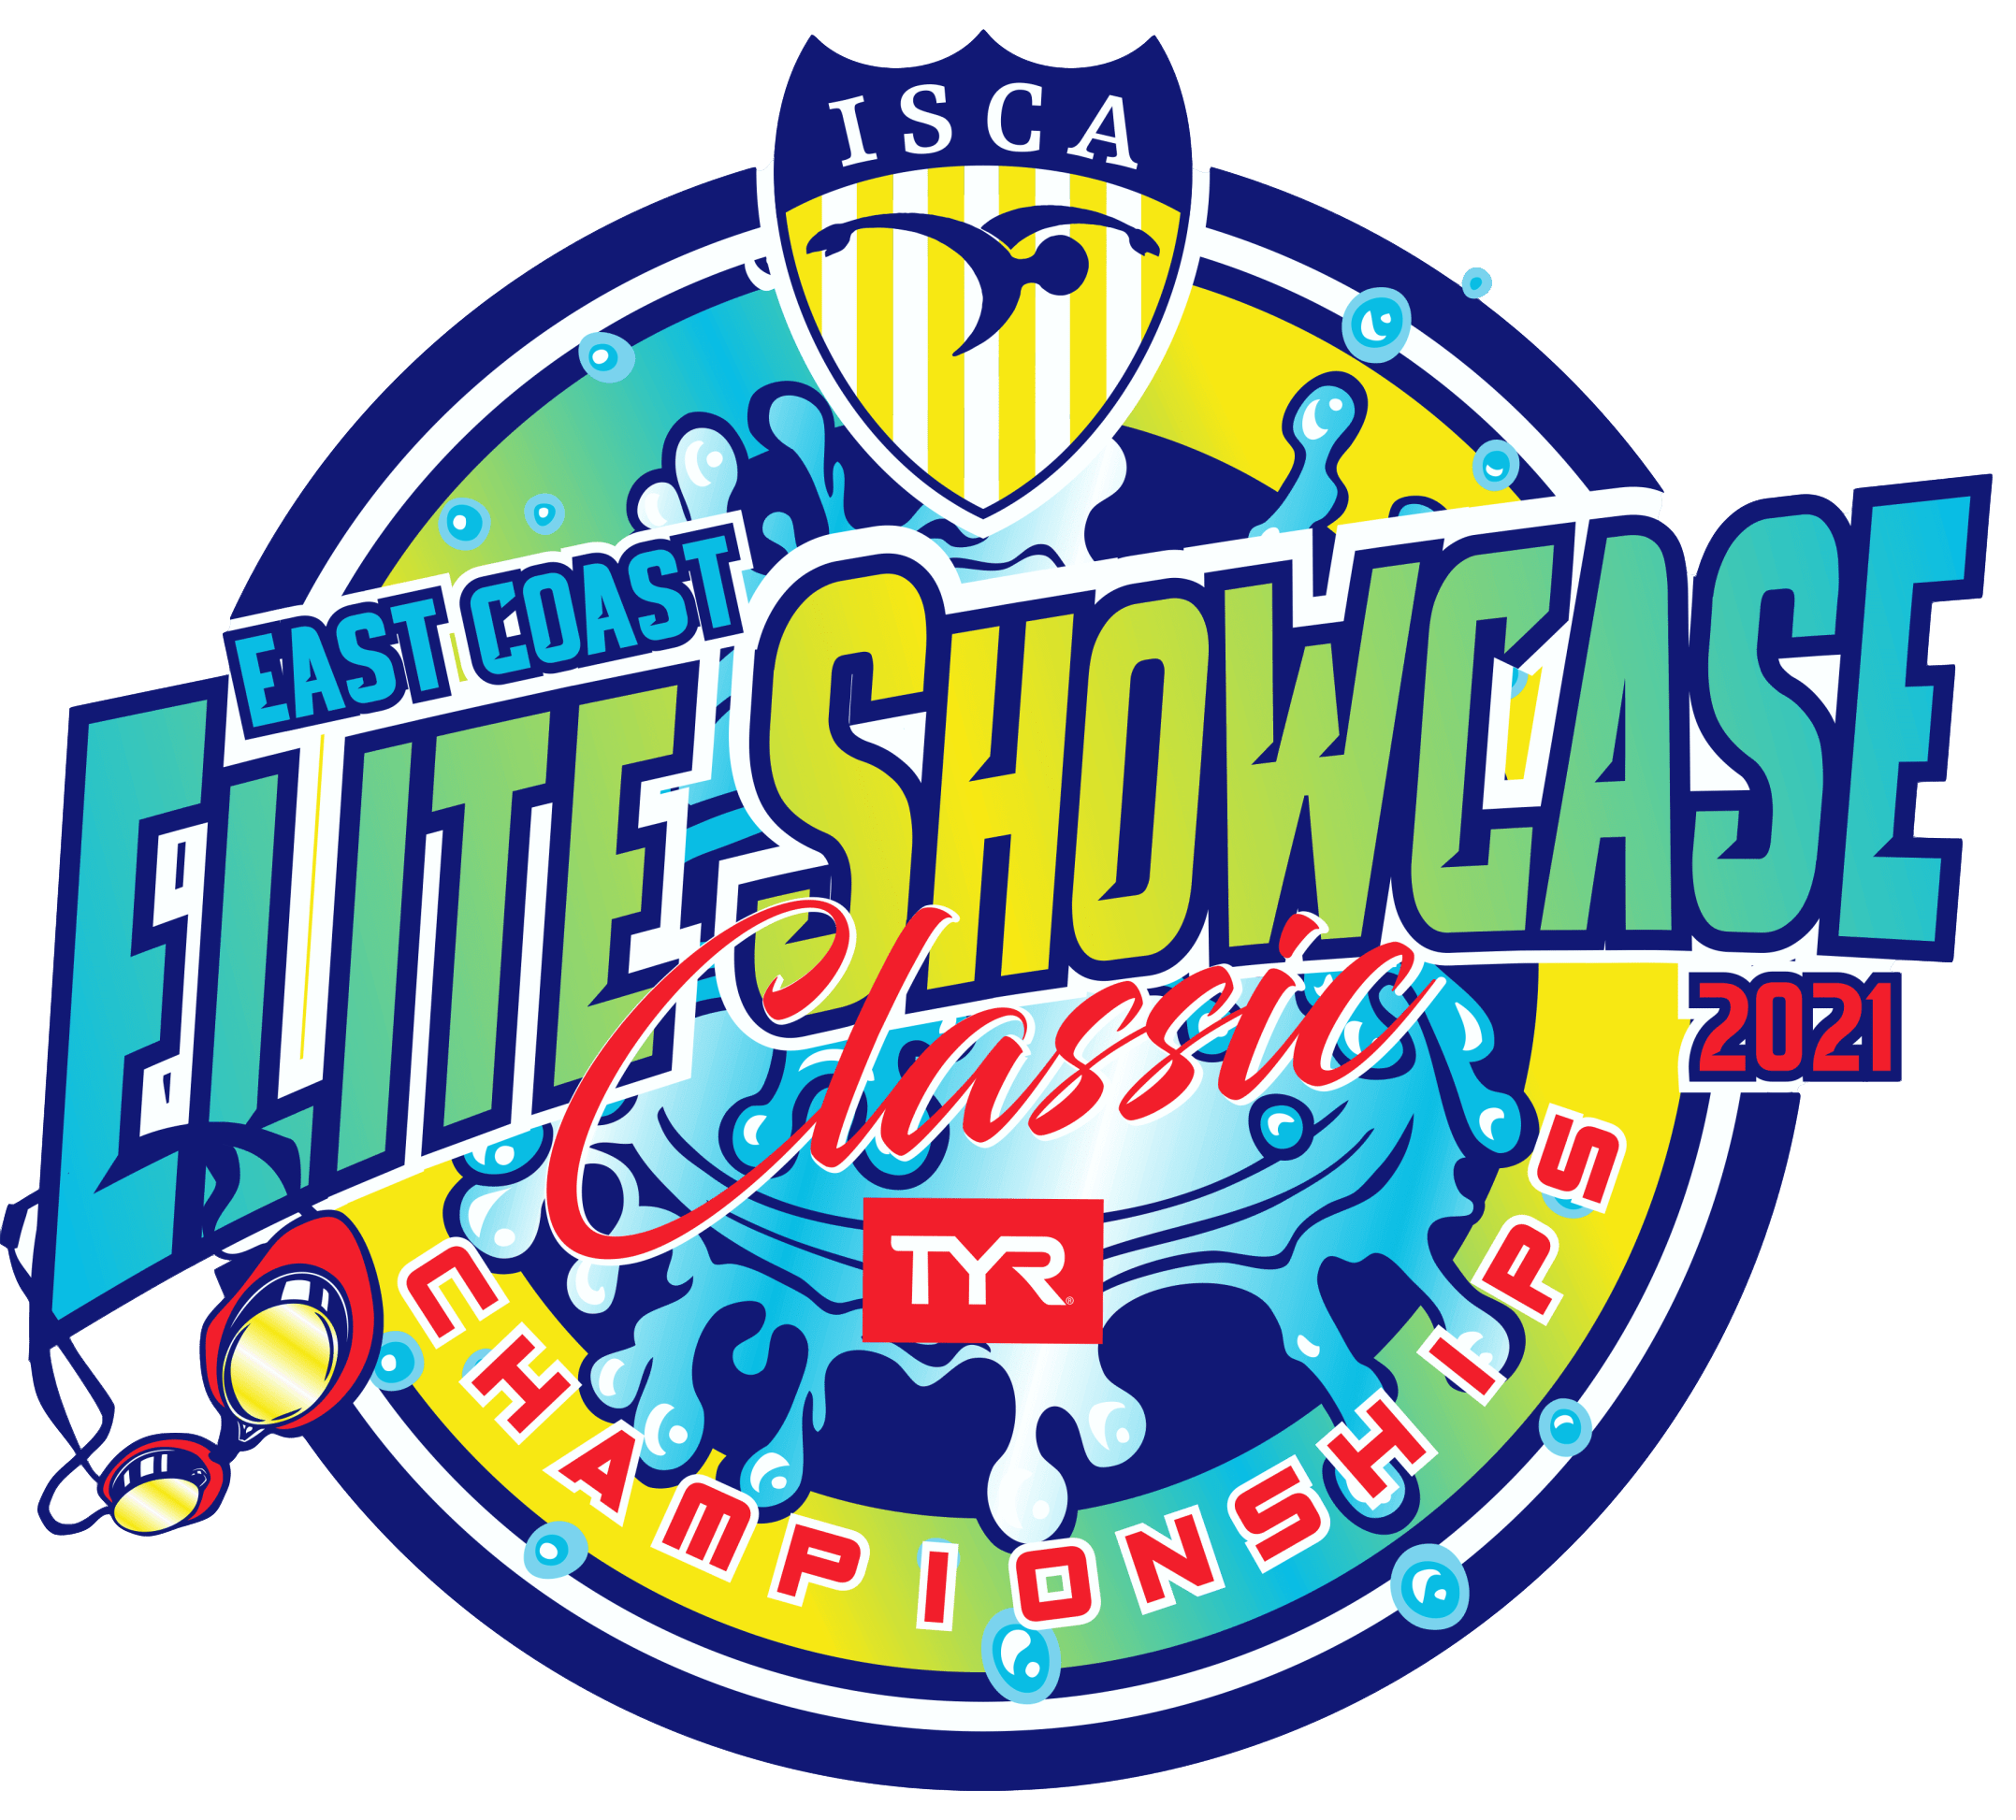 ISCA Elite Showcase 2021 logo